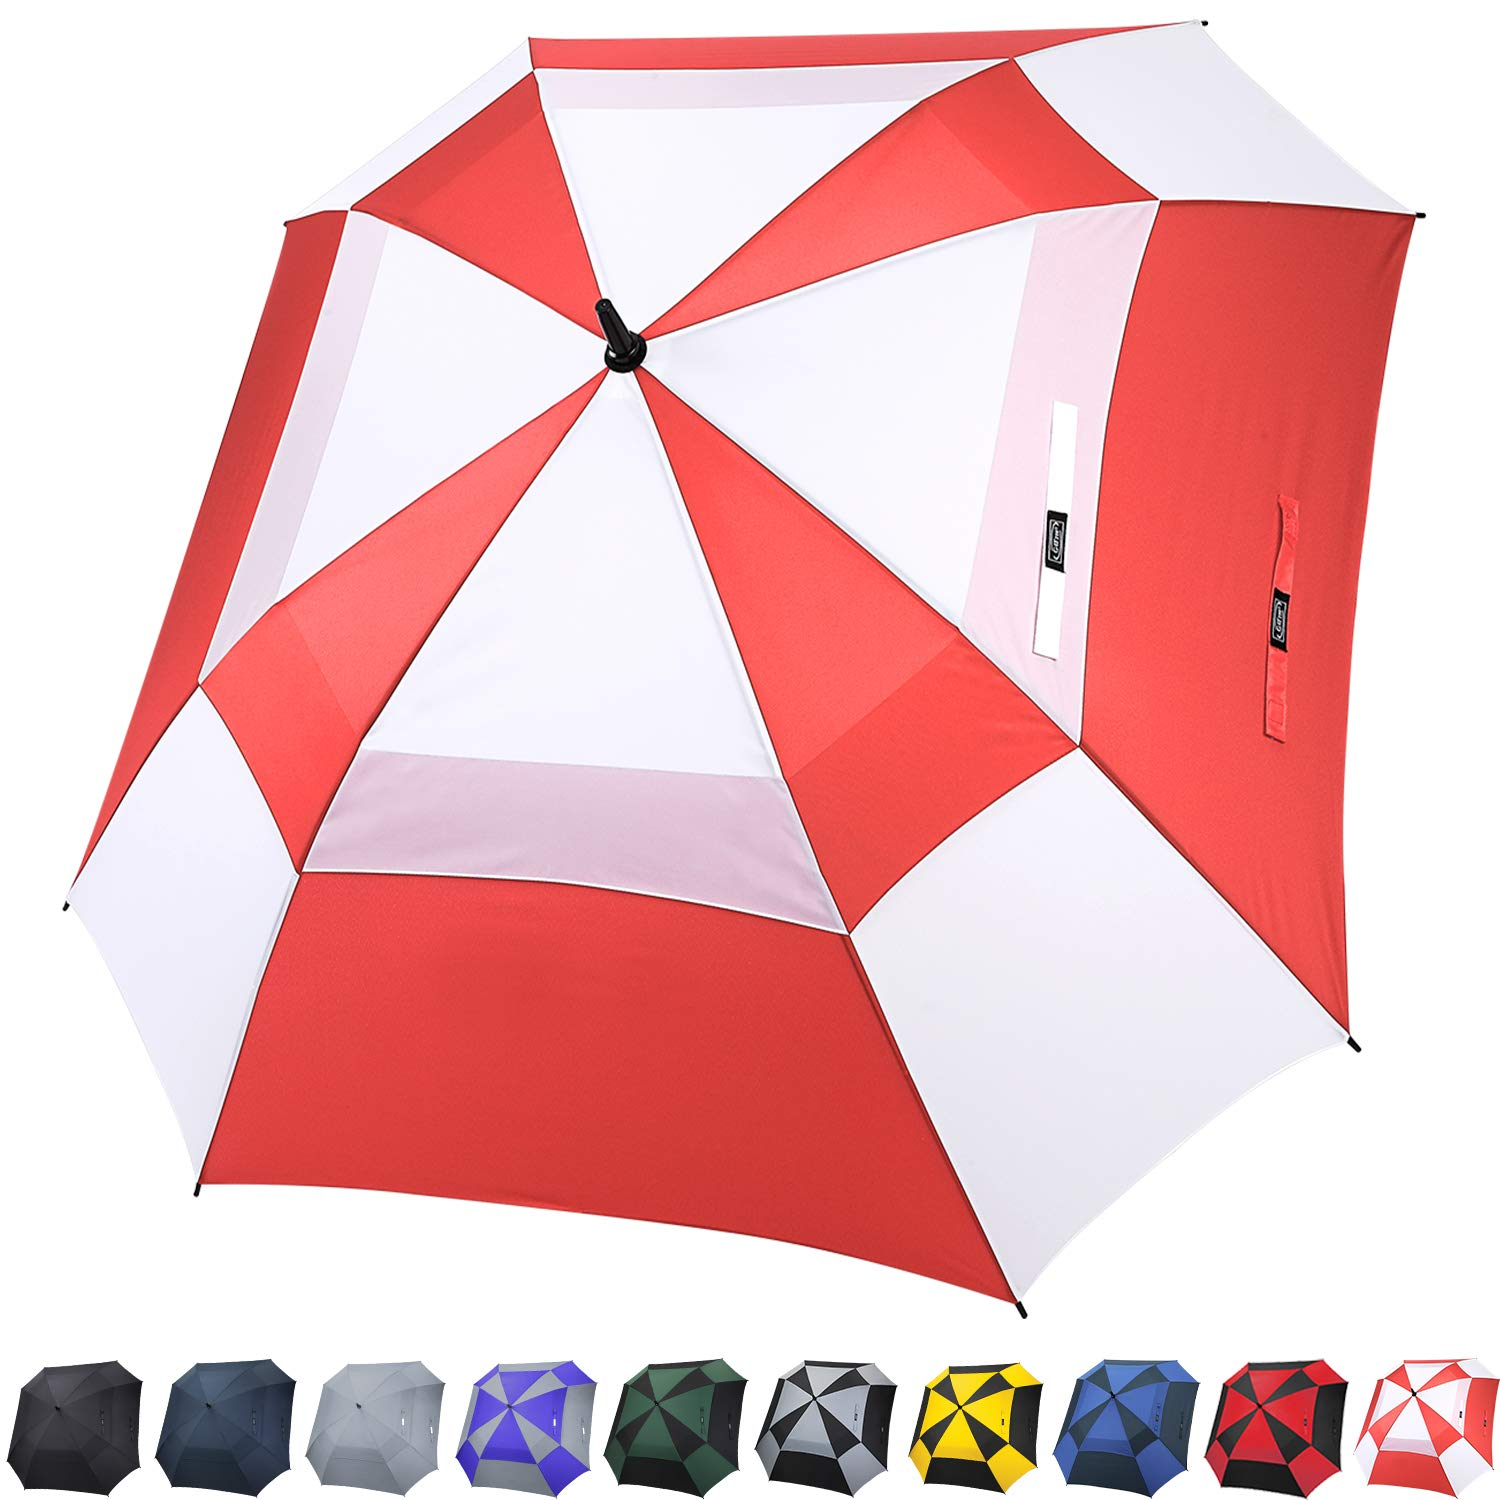 G4Free Extra Large Golf Umbrella Double Canopy Vented Square Umbrella Windproof Automatic Open 62 Inch Oversize Stick Umbrella for Men Women (Red/White) by G4Free